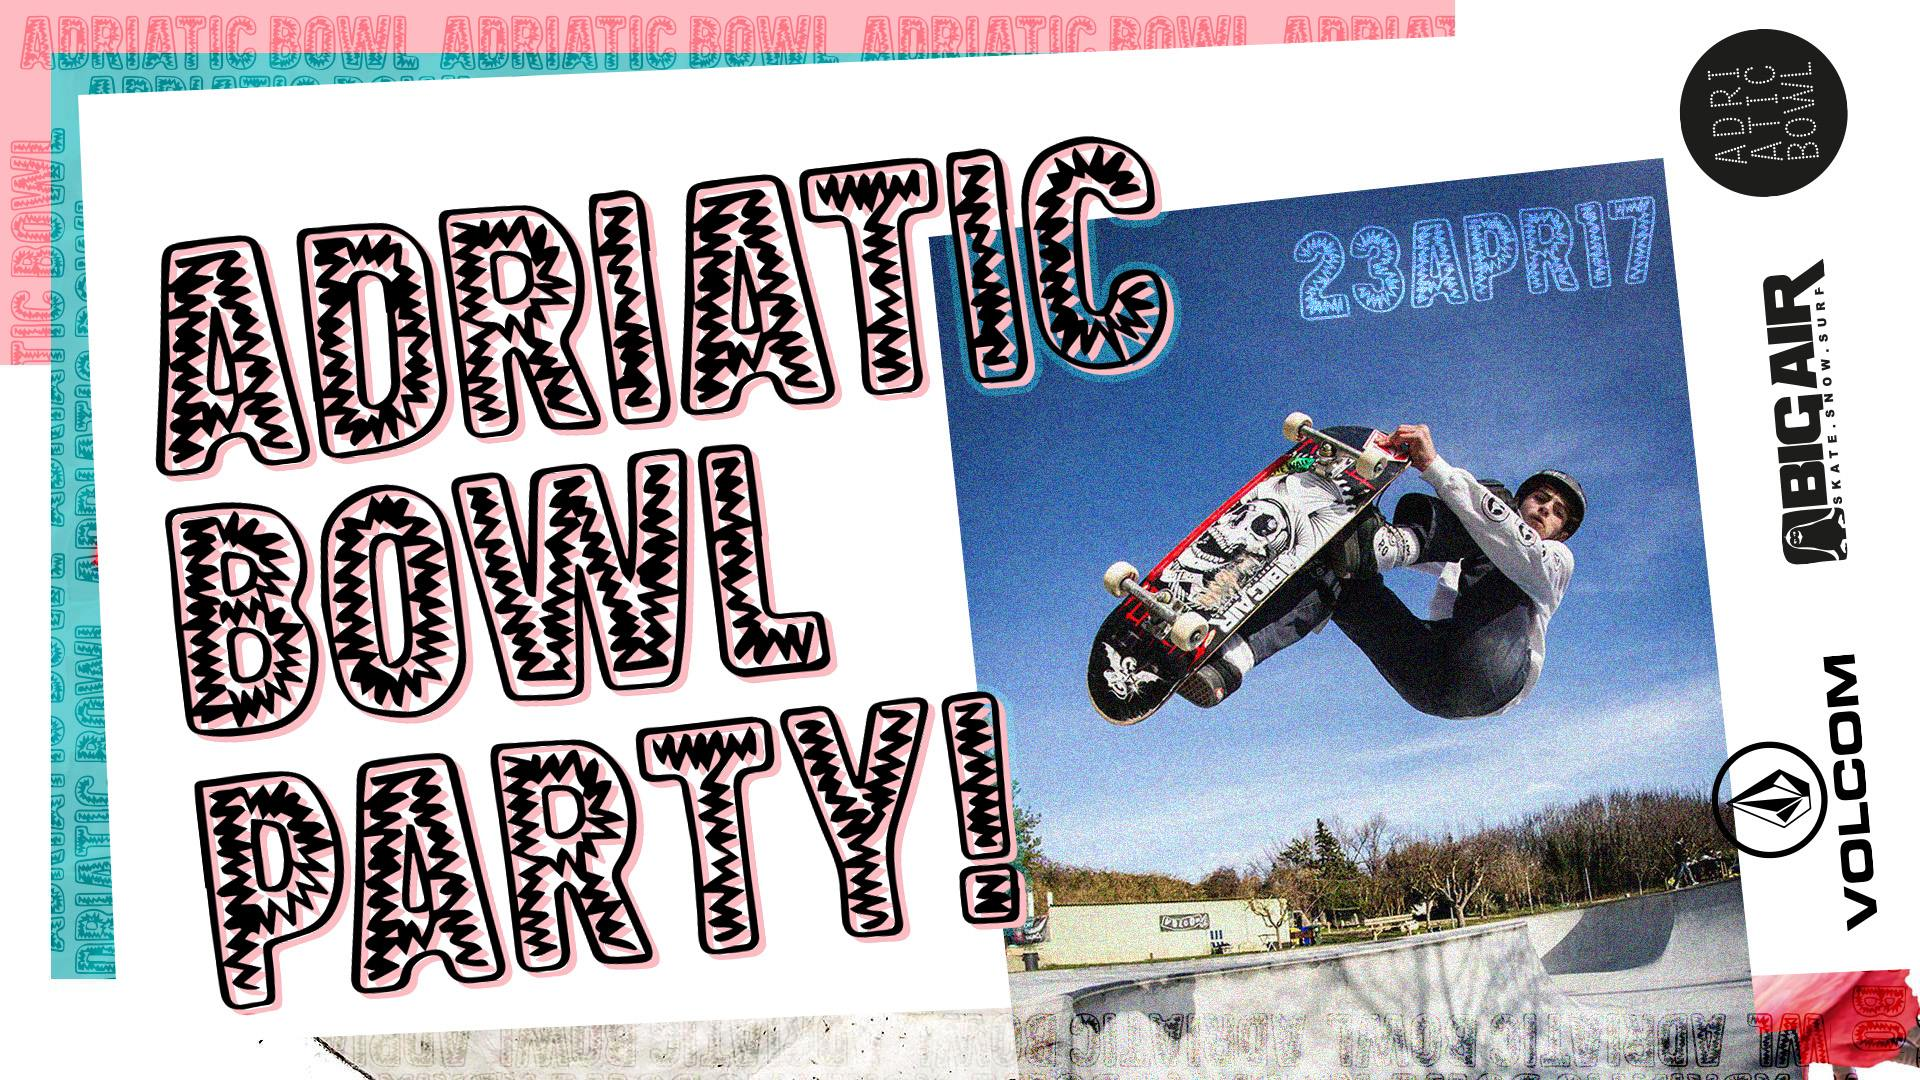 Adriatic Bowl party!